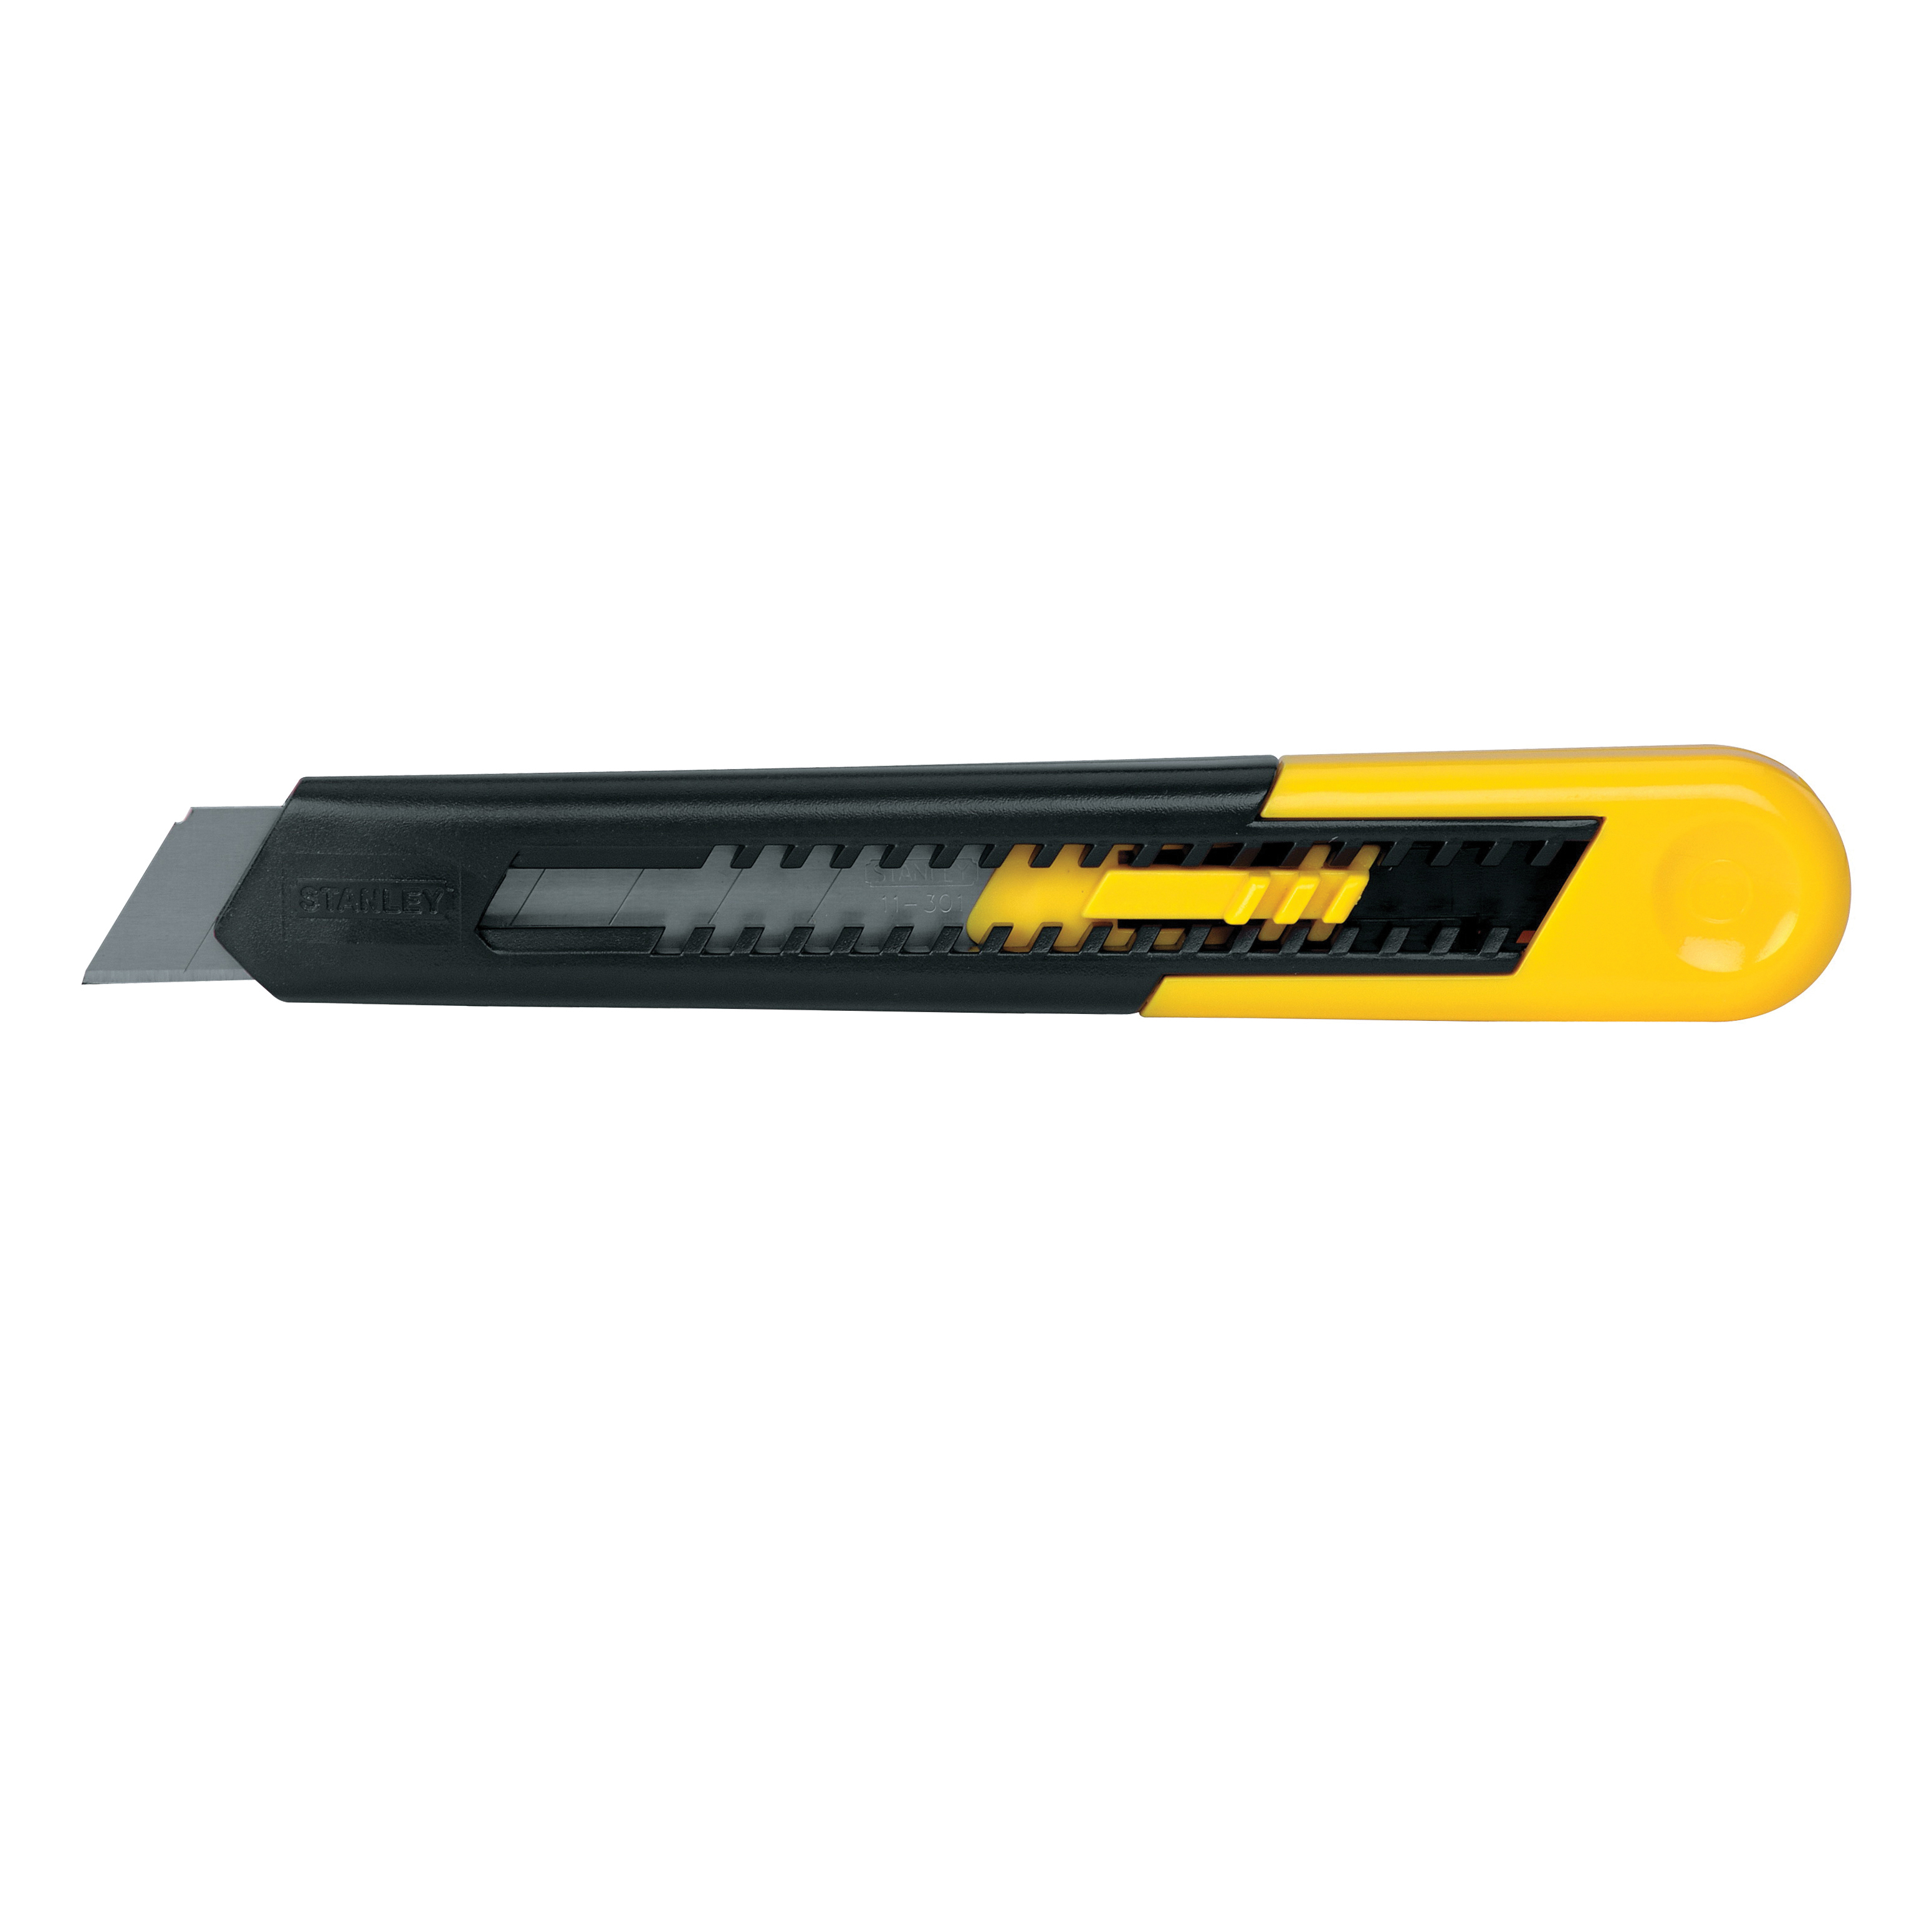 Stanley® Quick-Point™ 10-151 Light Duty Utility Knife, 18 mm W Snap-Off Blade, 1 Blade Included, High Carbon Steel Blade